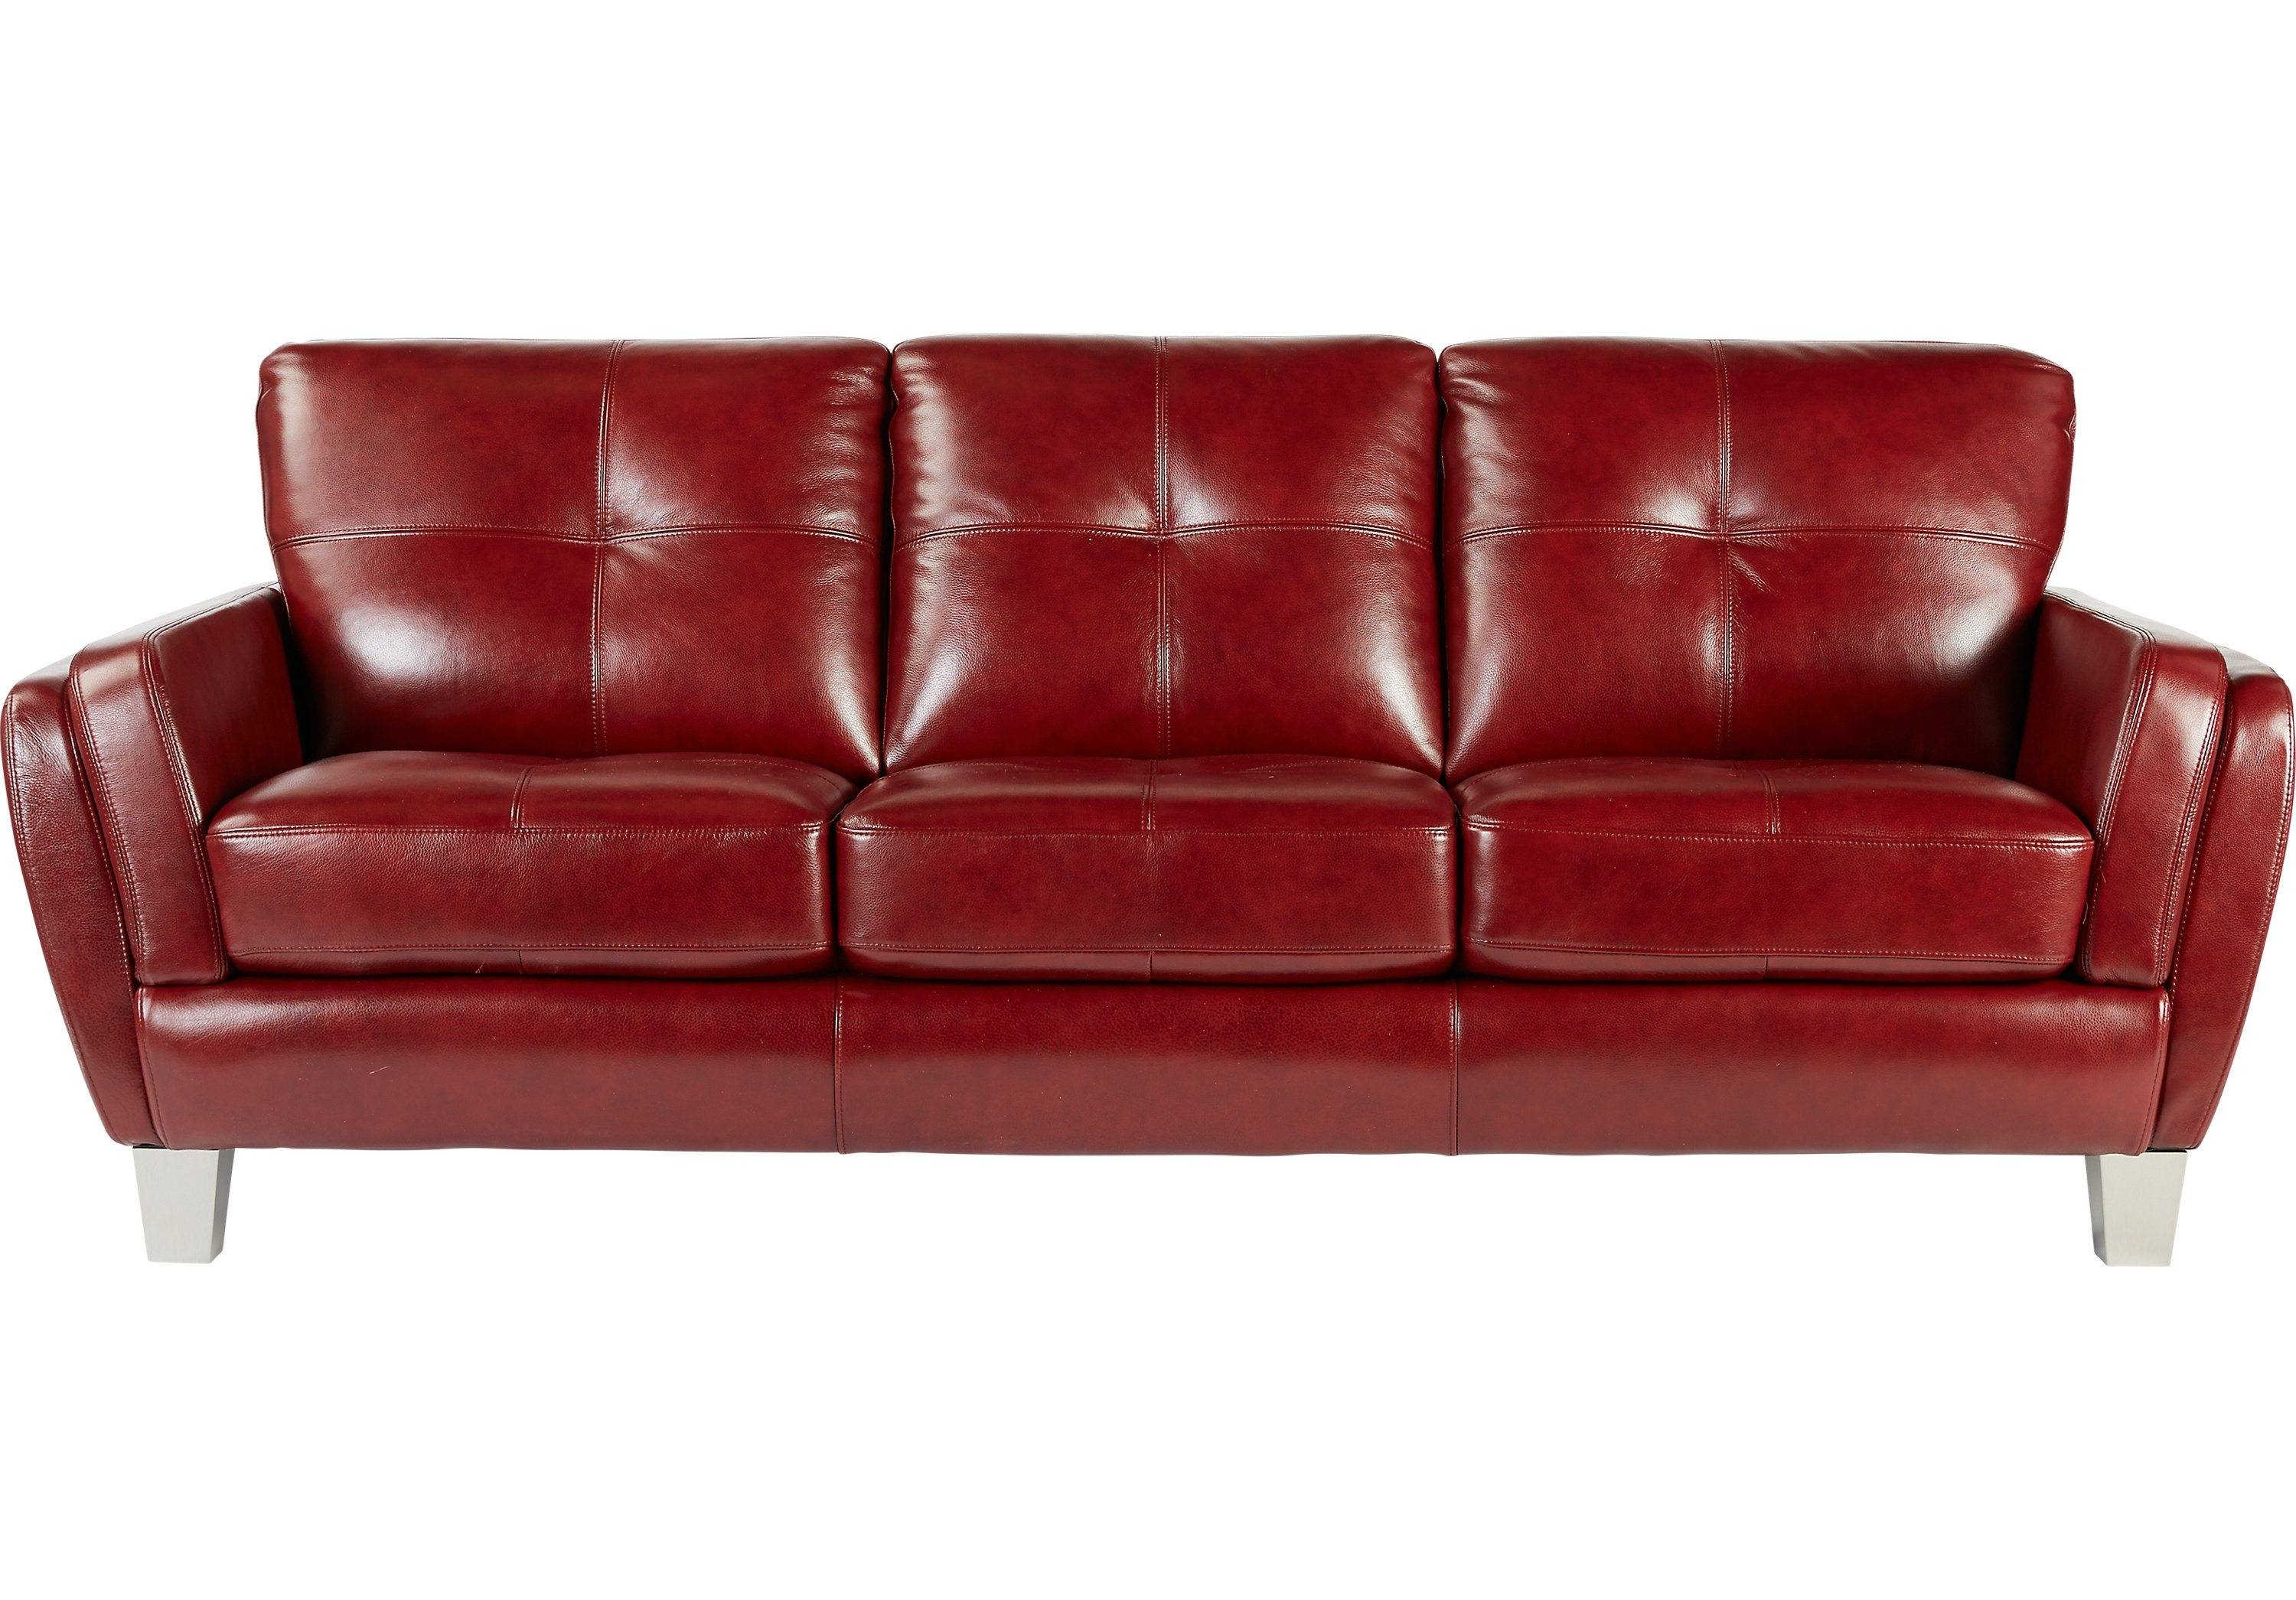 The Best Cindy Crawford Leather Sofas